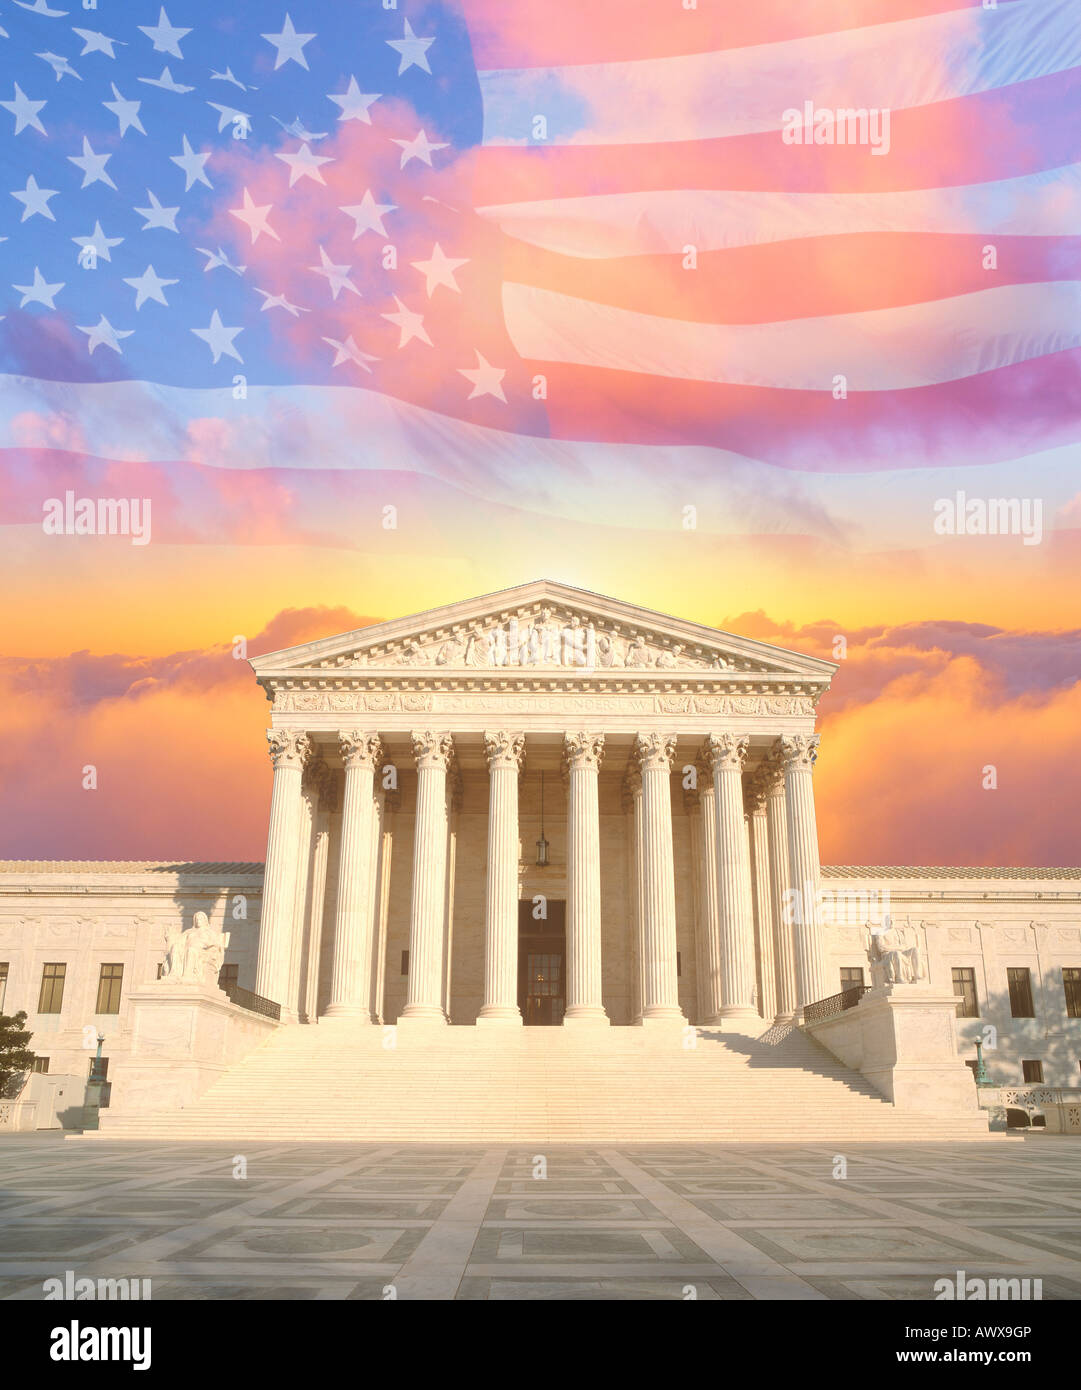 Composite image of the U.S. Supreme Court, American flag, and colorful sunrise sky - Stock Image